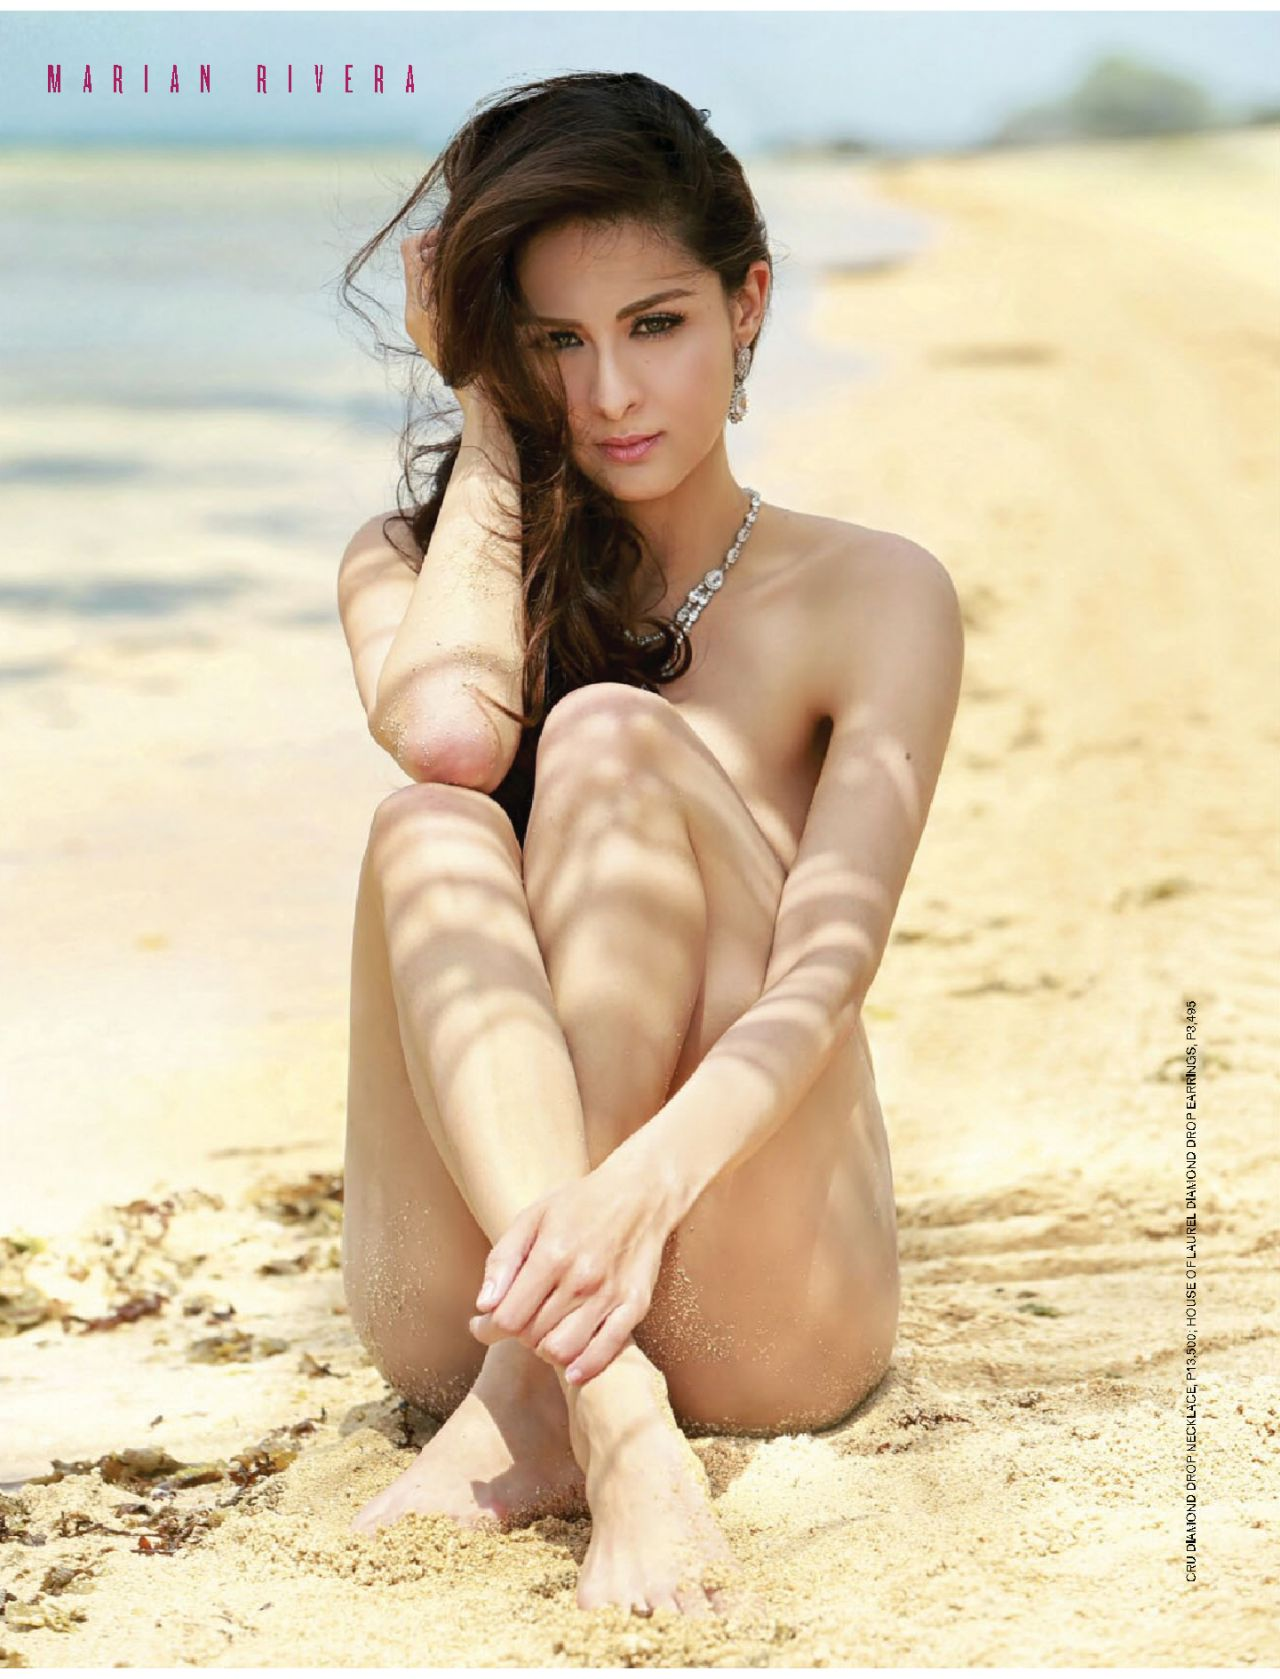 Draw? Marian rivera porn sex question